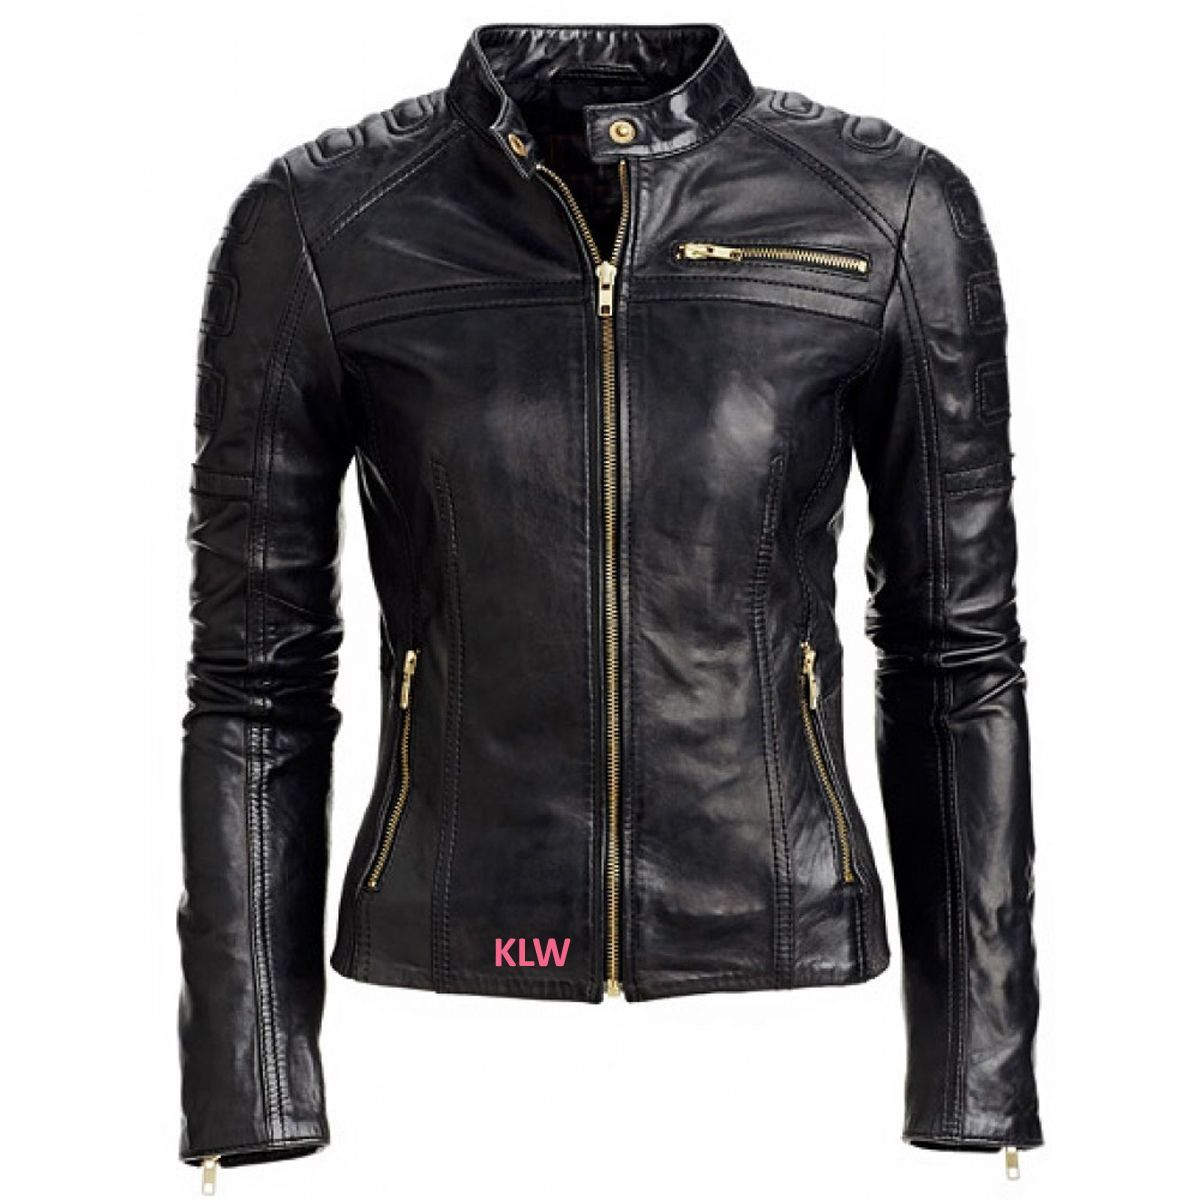 Leather Jacket Women Moto Style Quilted Soft Lambskin For Celebrity Ehs W-  03 b6c437829a0c0